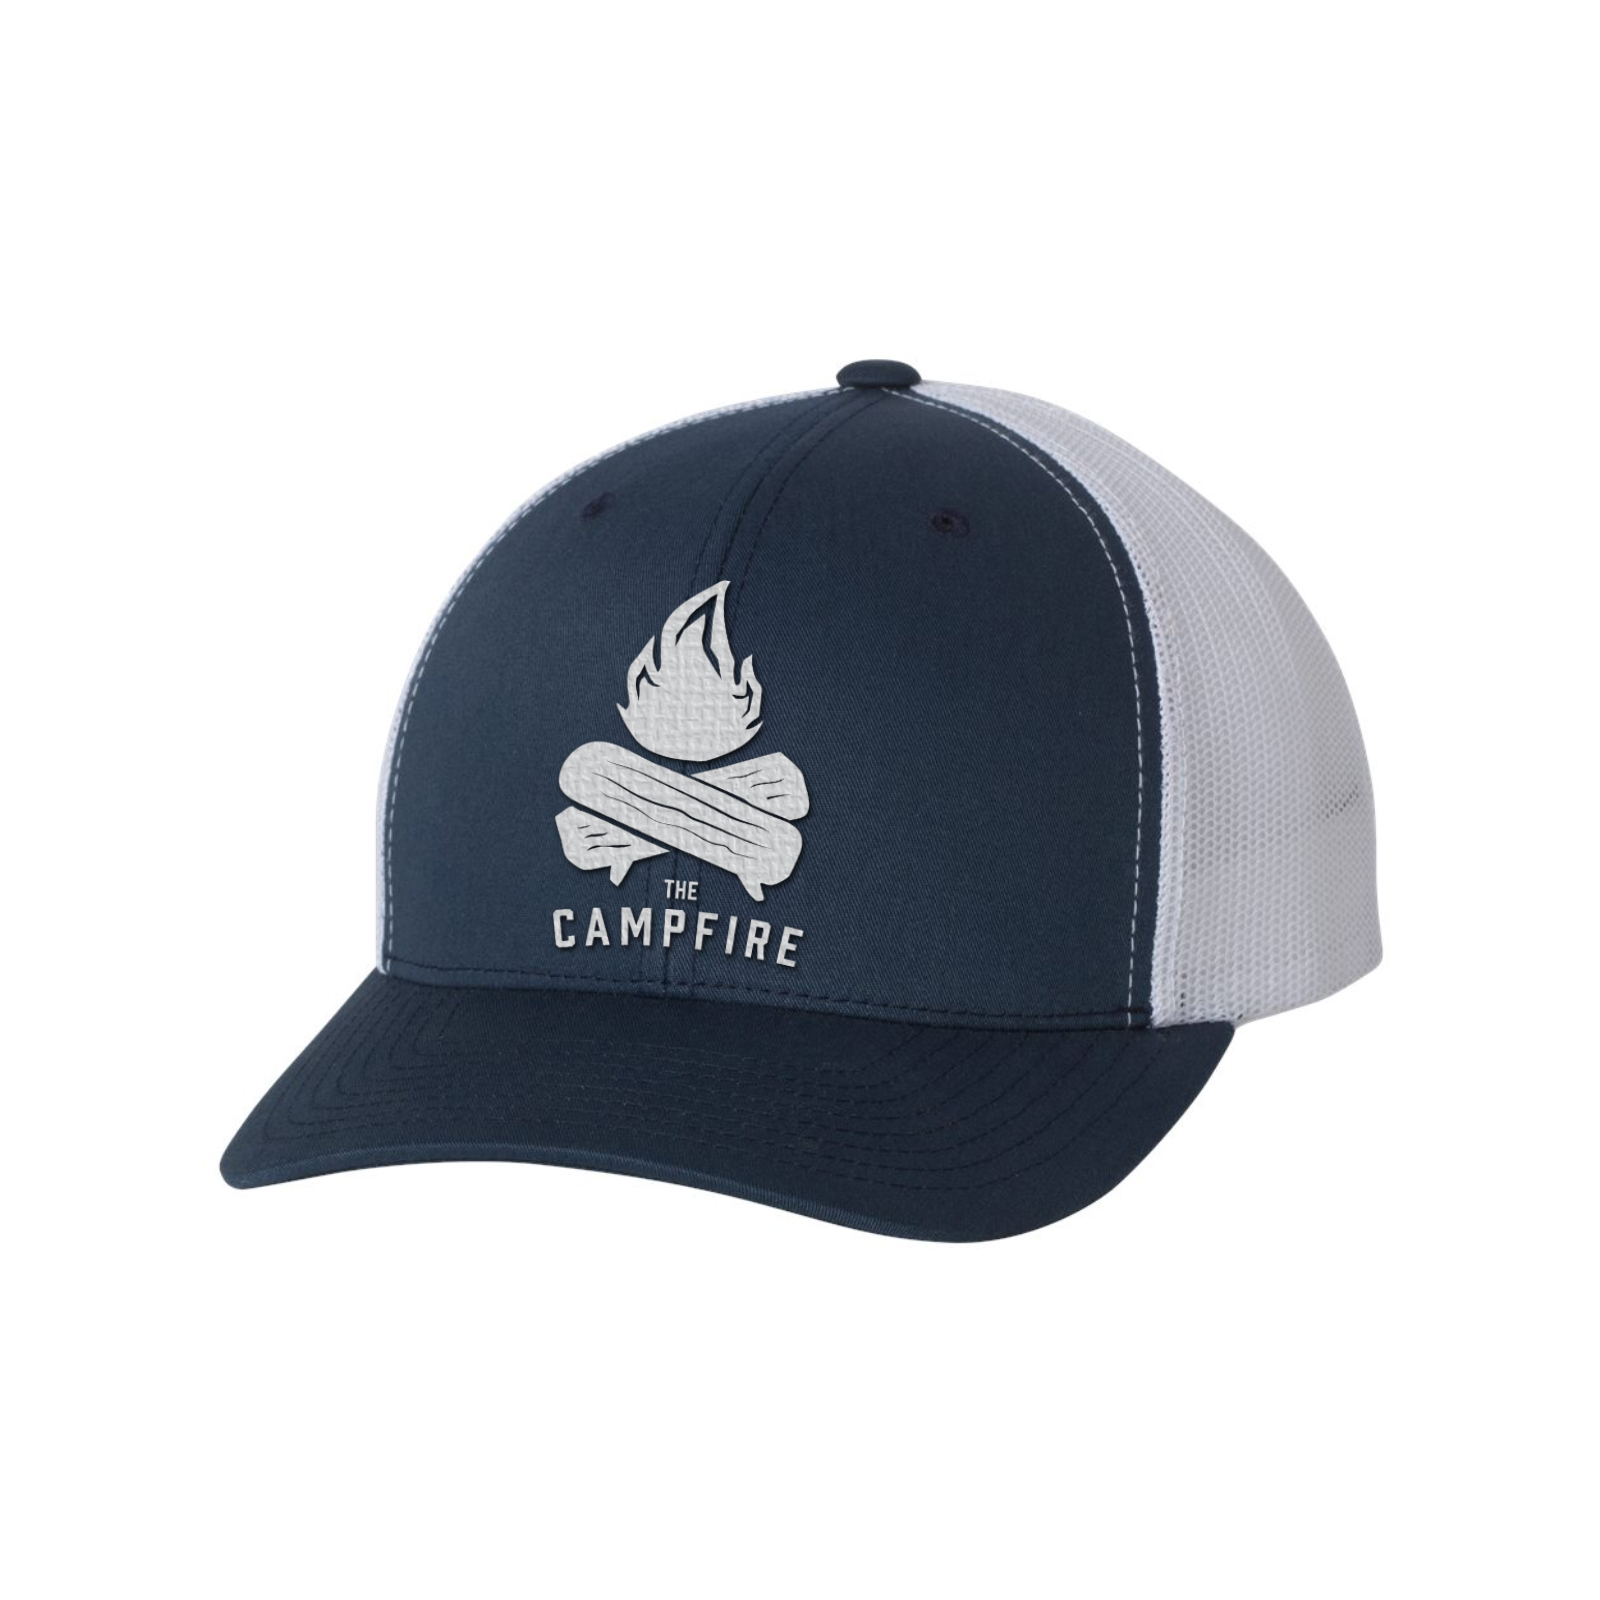 The Campfire Trucker Style Hat